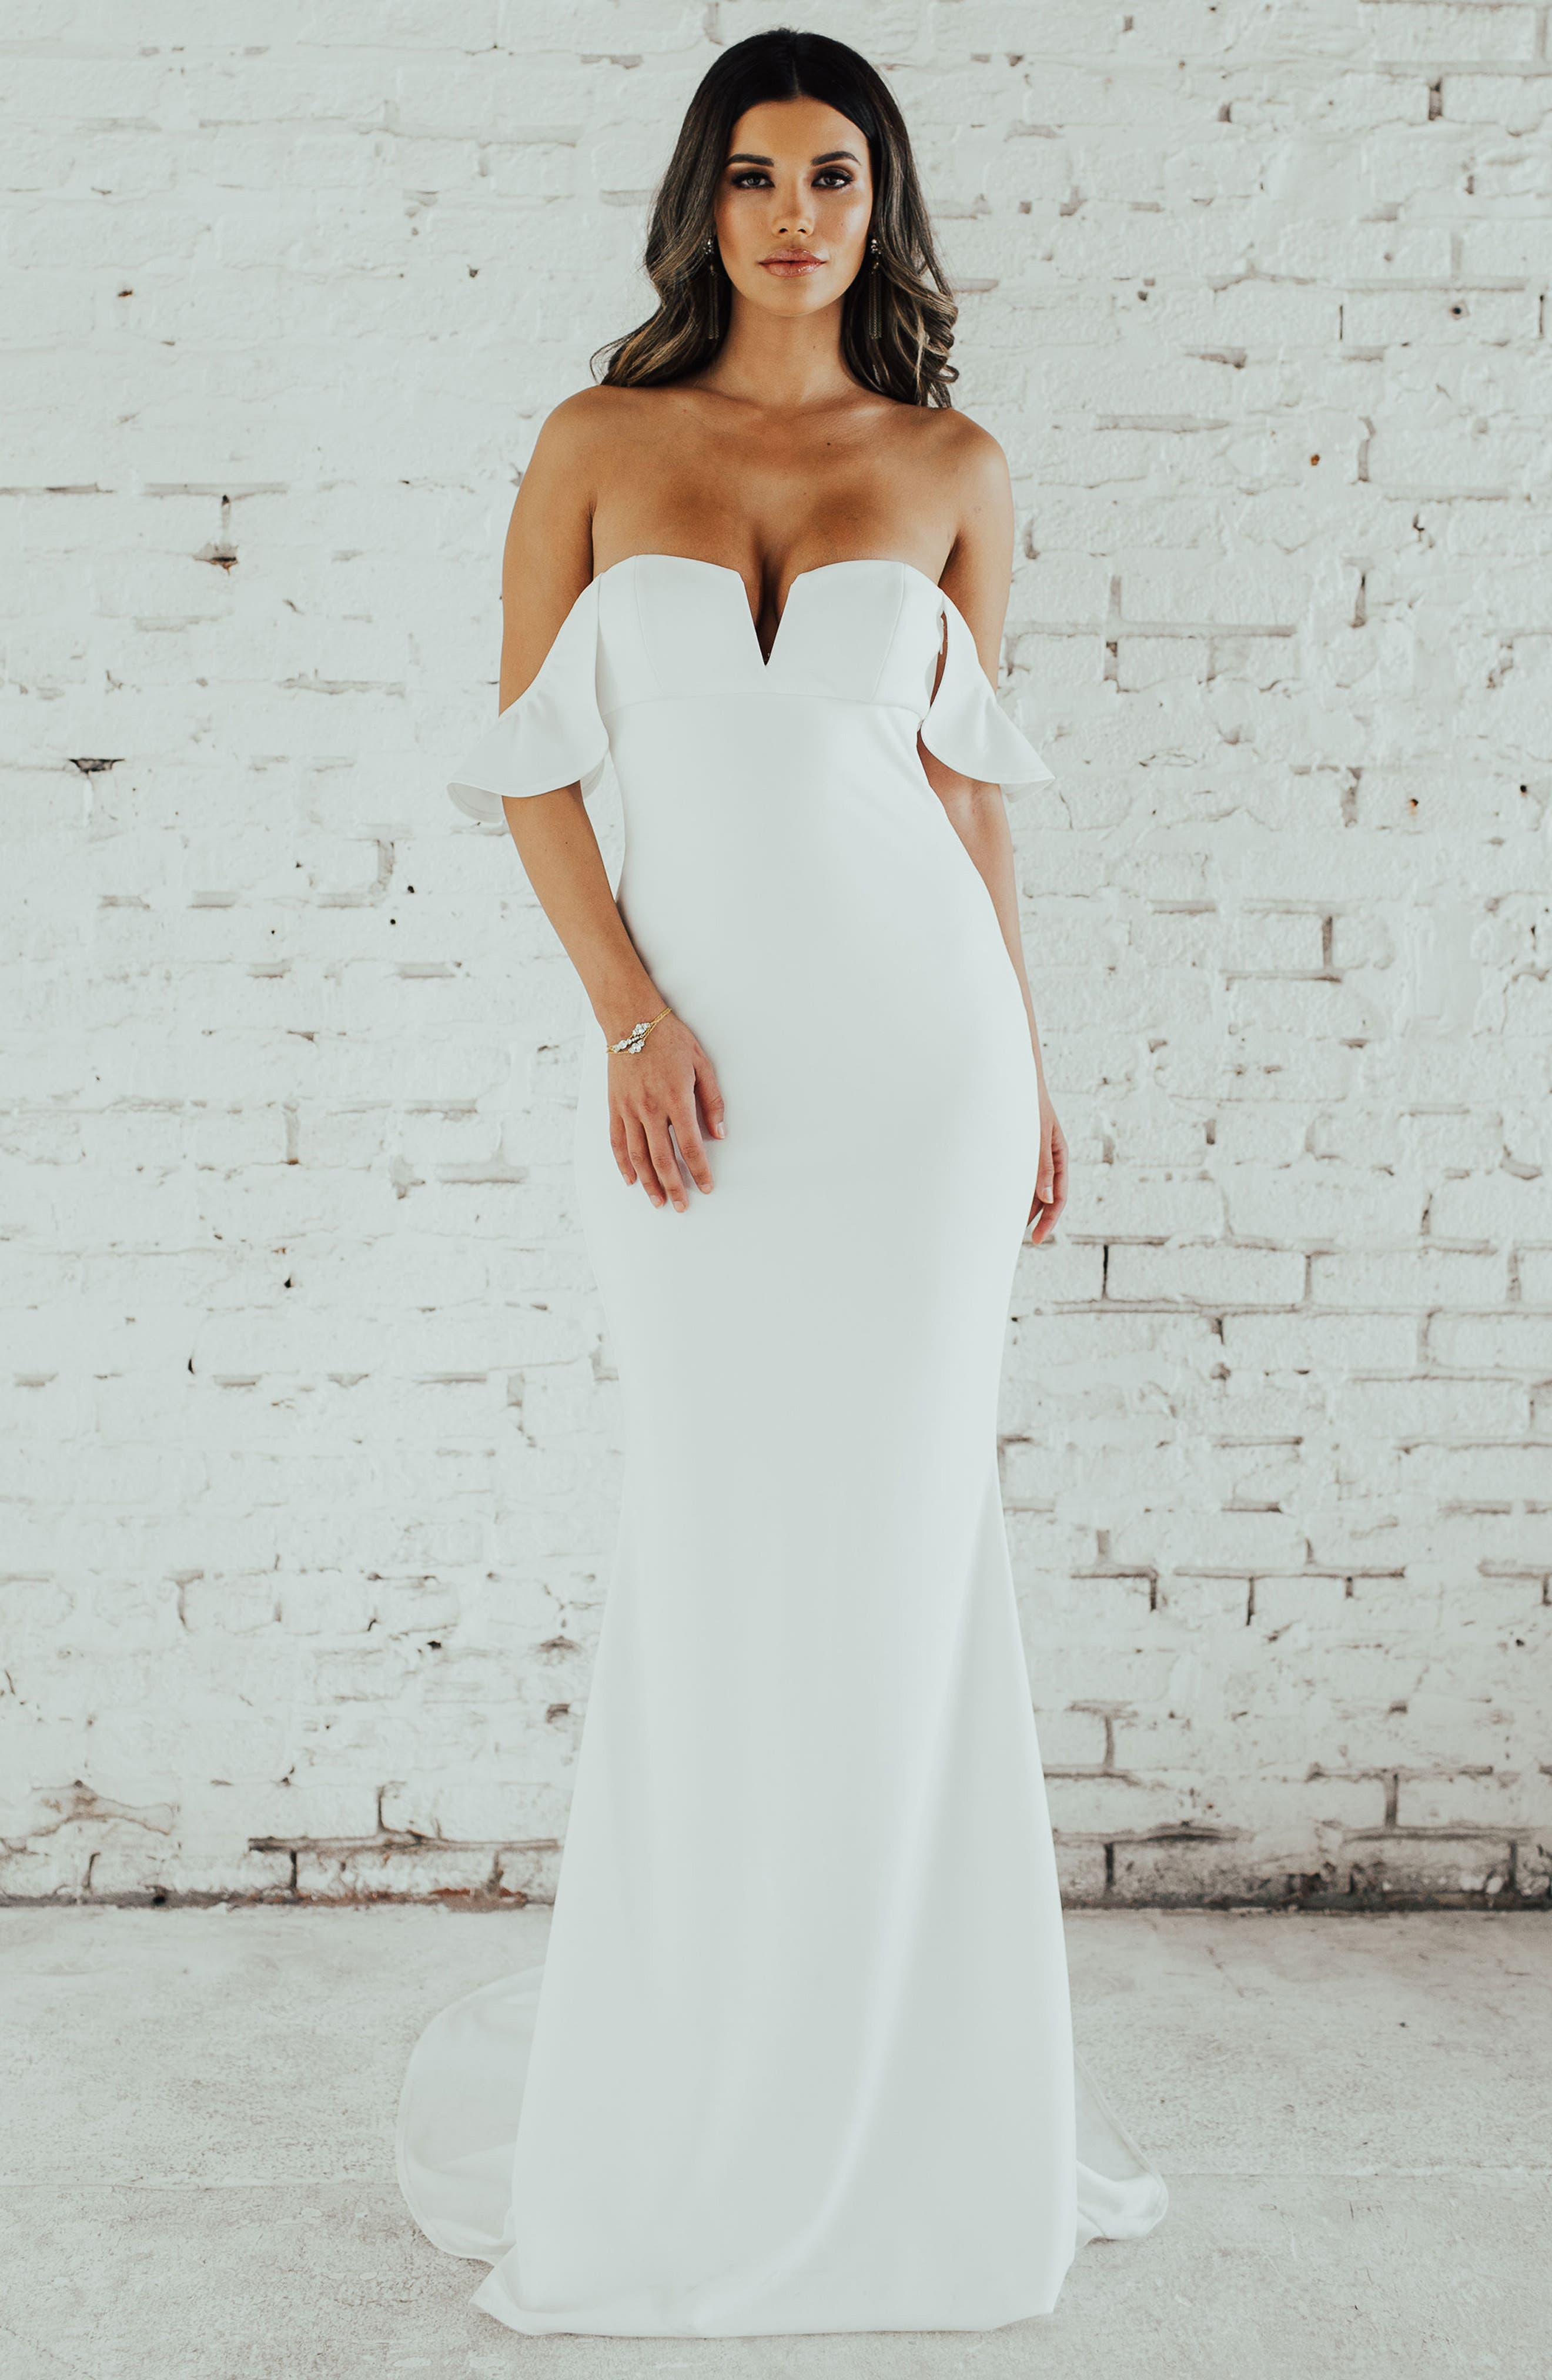 Noel And Jean By Katie May Nautilus Ruffled Off The Shoulder Crepe Mermaid Gown, Ivory